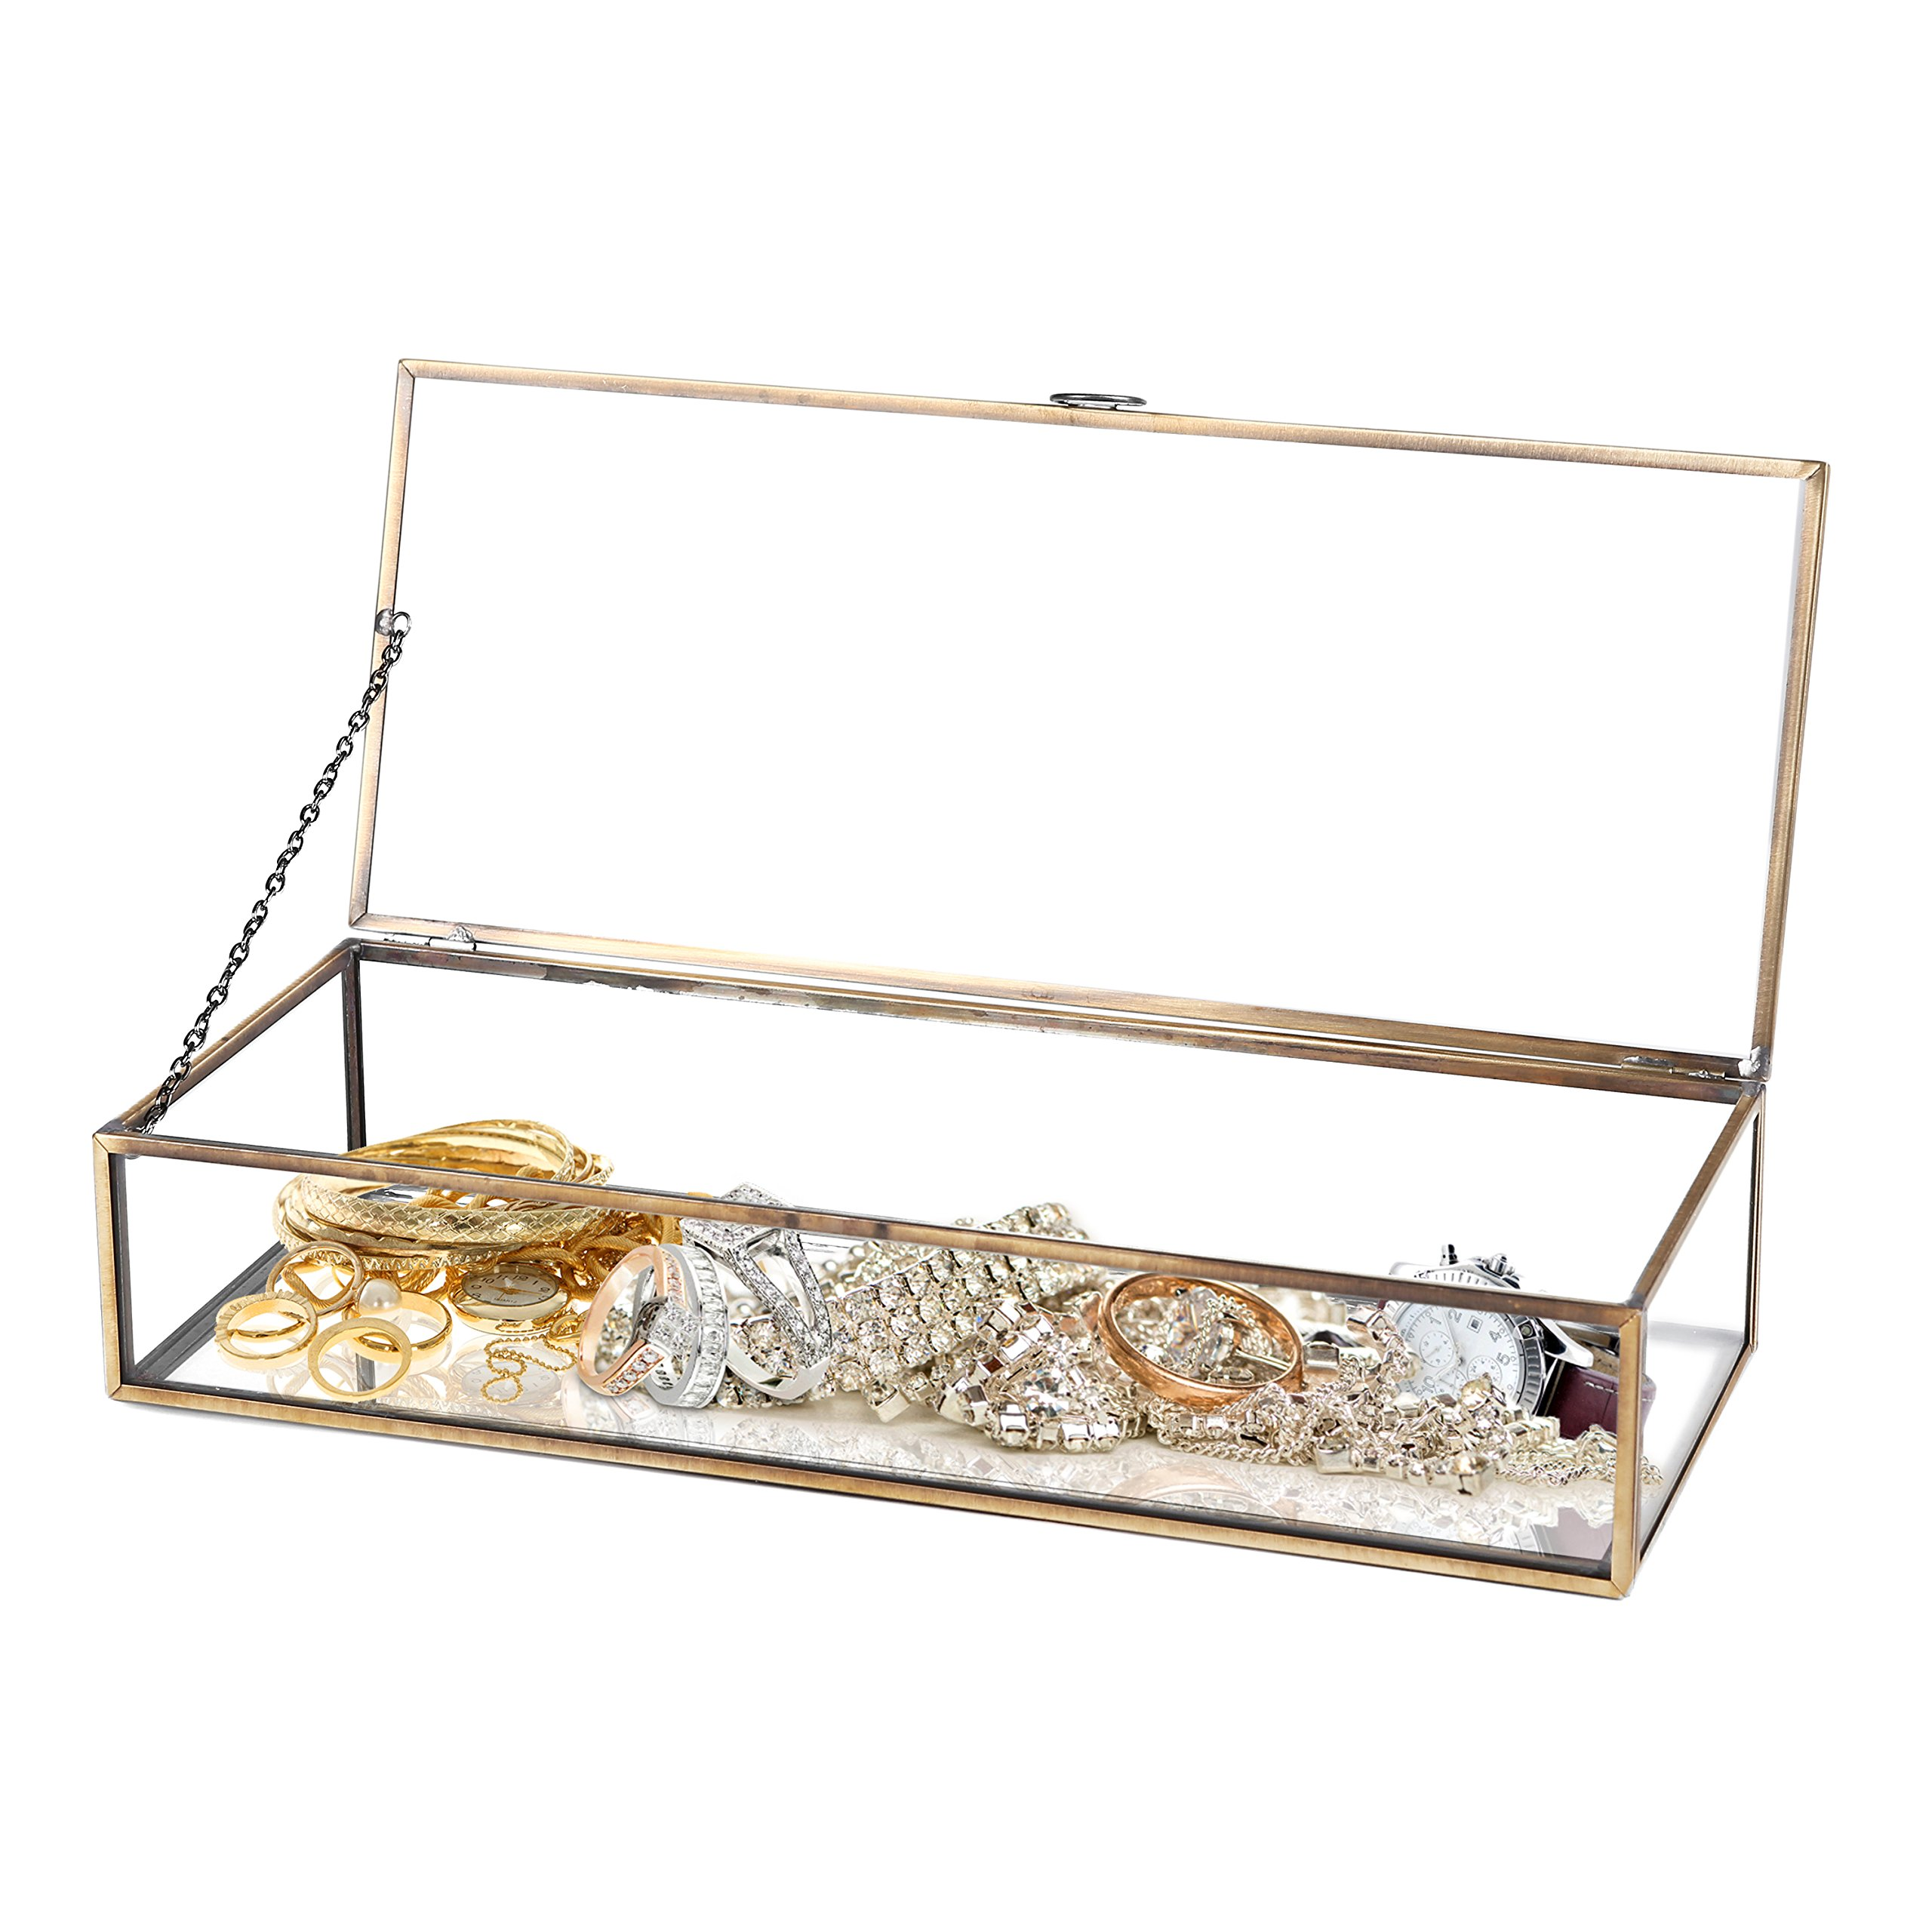 Vintage Style Brass Metal & Clear Glass Mirrored Shadow Box Jewelry Display Case w/Hinged Top Lid